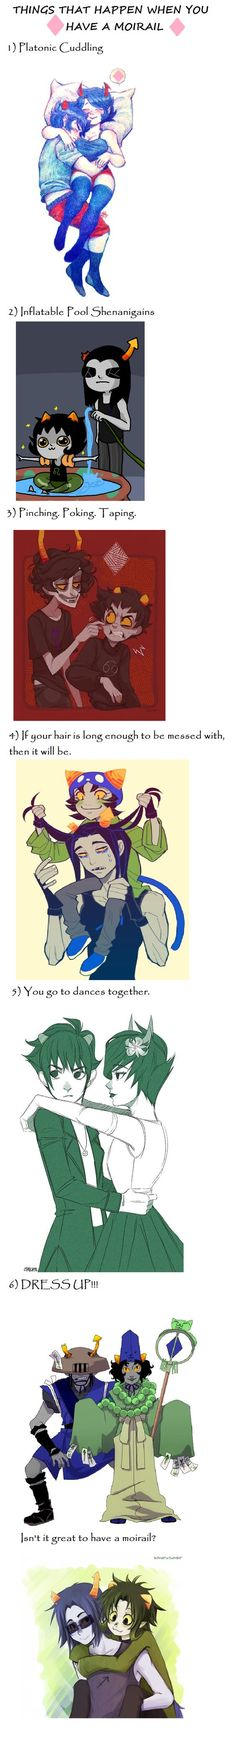 <> #Homestuck #Moirail<< I wish we had this kind of relationship on earth: